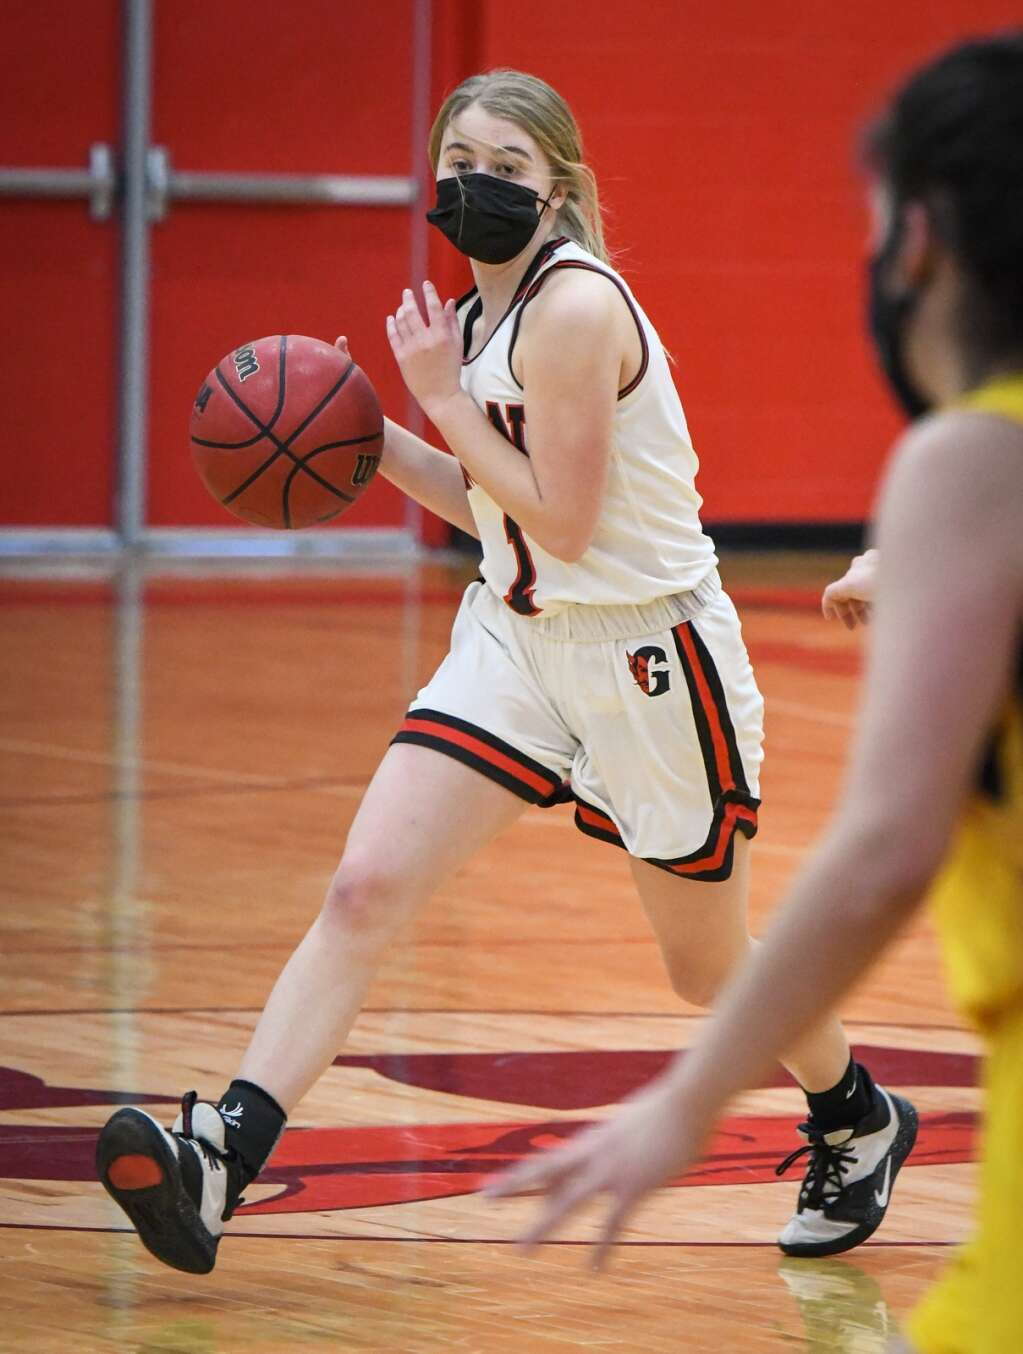 Glenwood Springs Demon Maddie Moser dribbles the ball down the court during Tuesday night's rivalry game against the Rifle Bears. |Chelsea Self / Post Independent